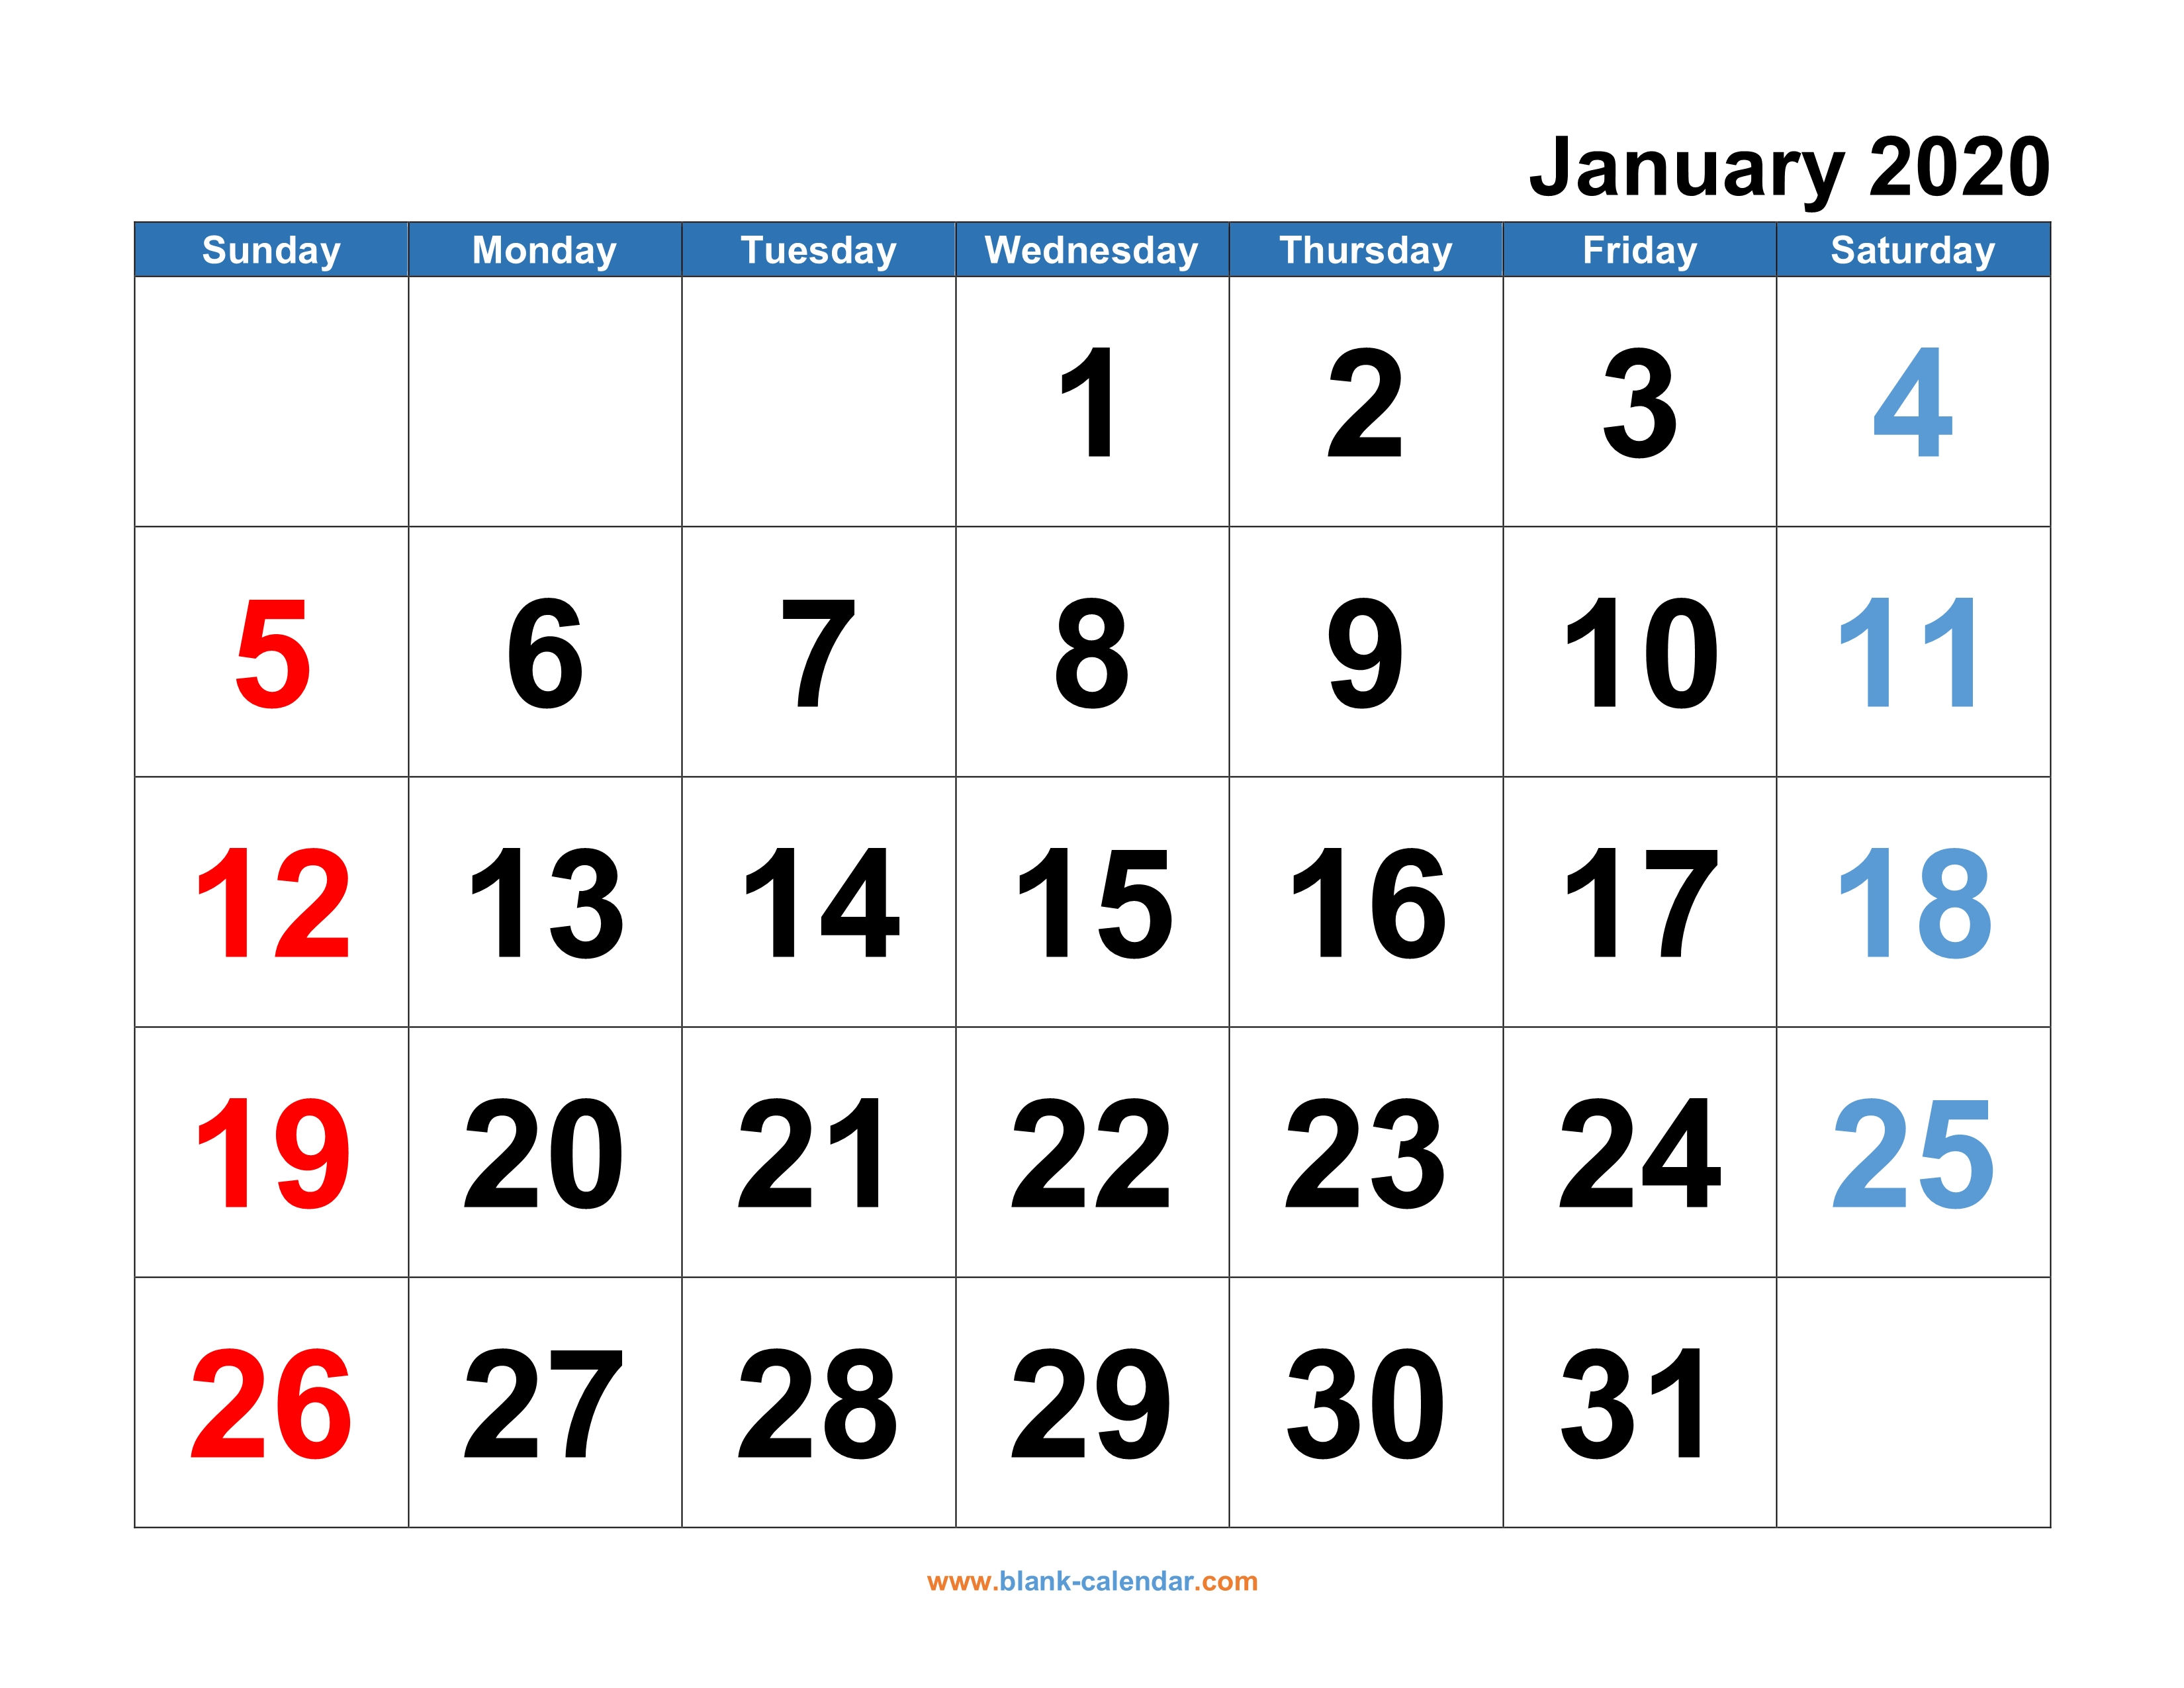 Monthly Calendar 2020 | Free Download, Editable And Printable with regard to 2020 Calendars That You Can Edit